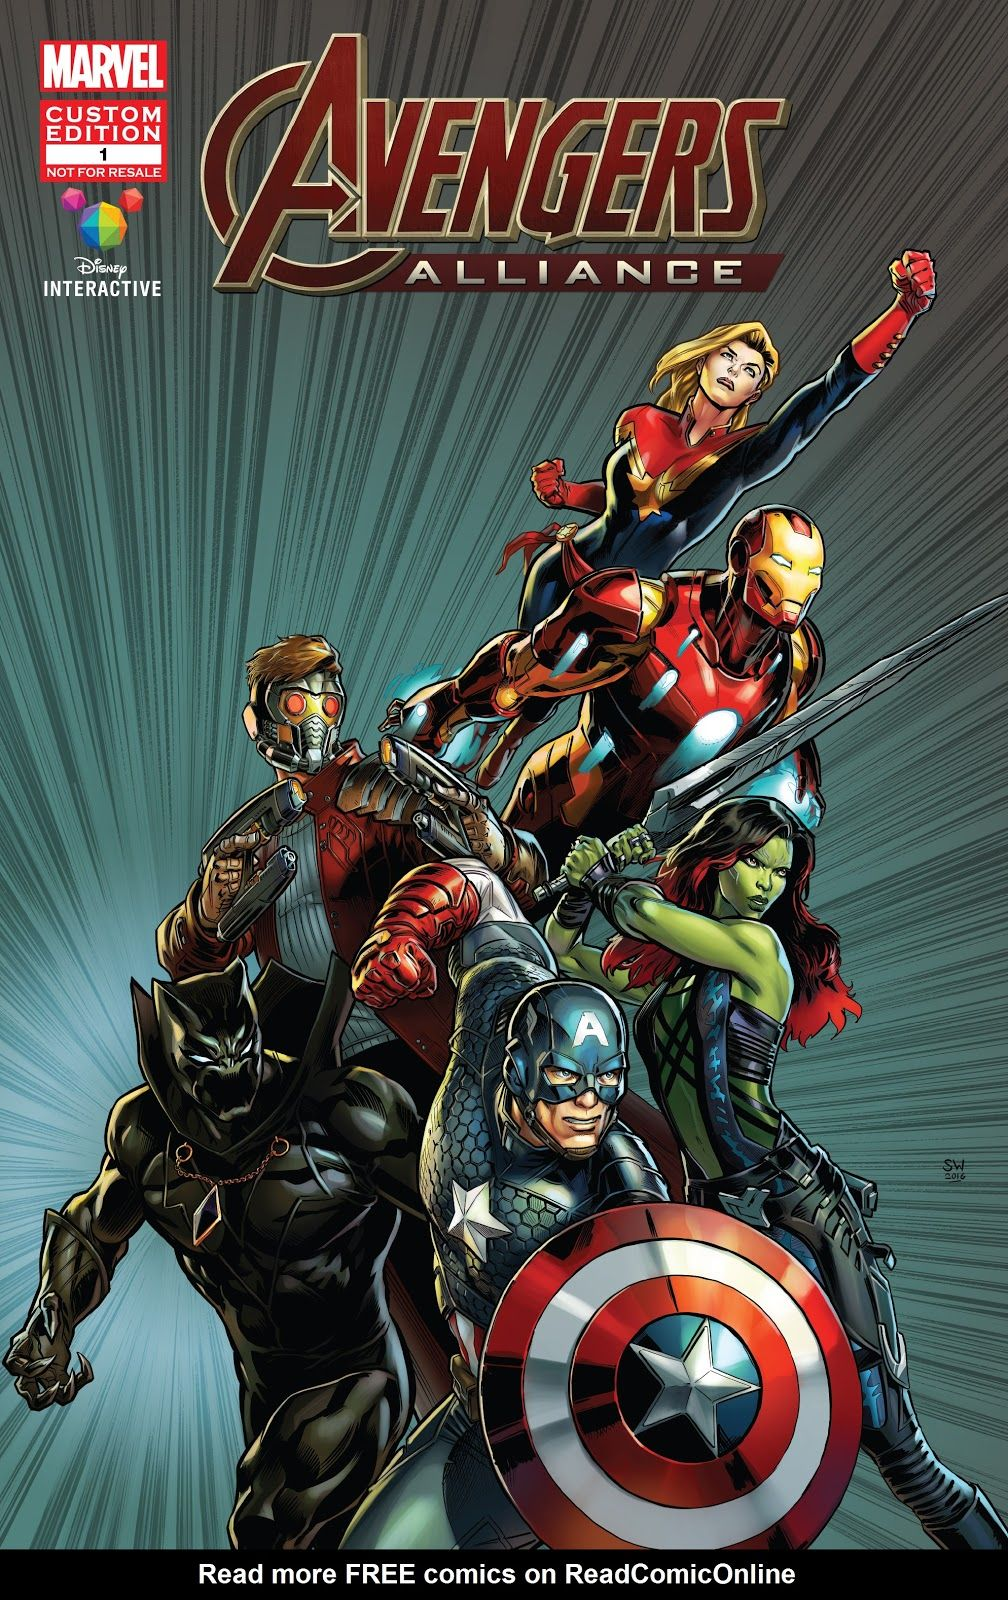 Avengers Alliance Issue 1 Read Avengers Alliance Issue 1 Comic Online In High Quality Avengers Alliance Marvel Avengers Alliance Avengers